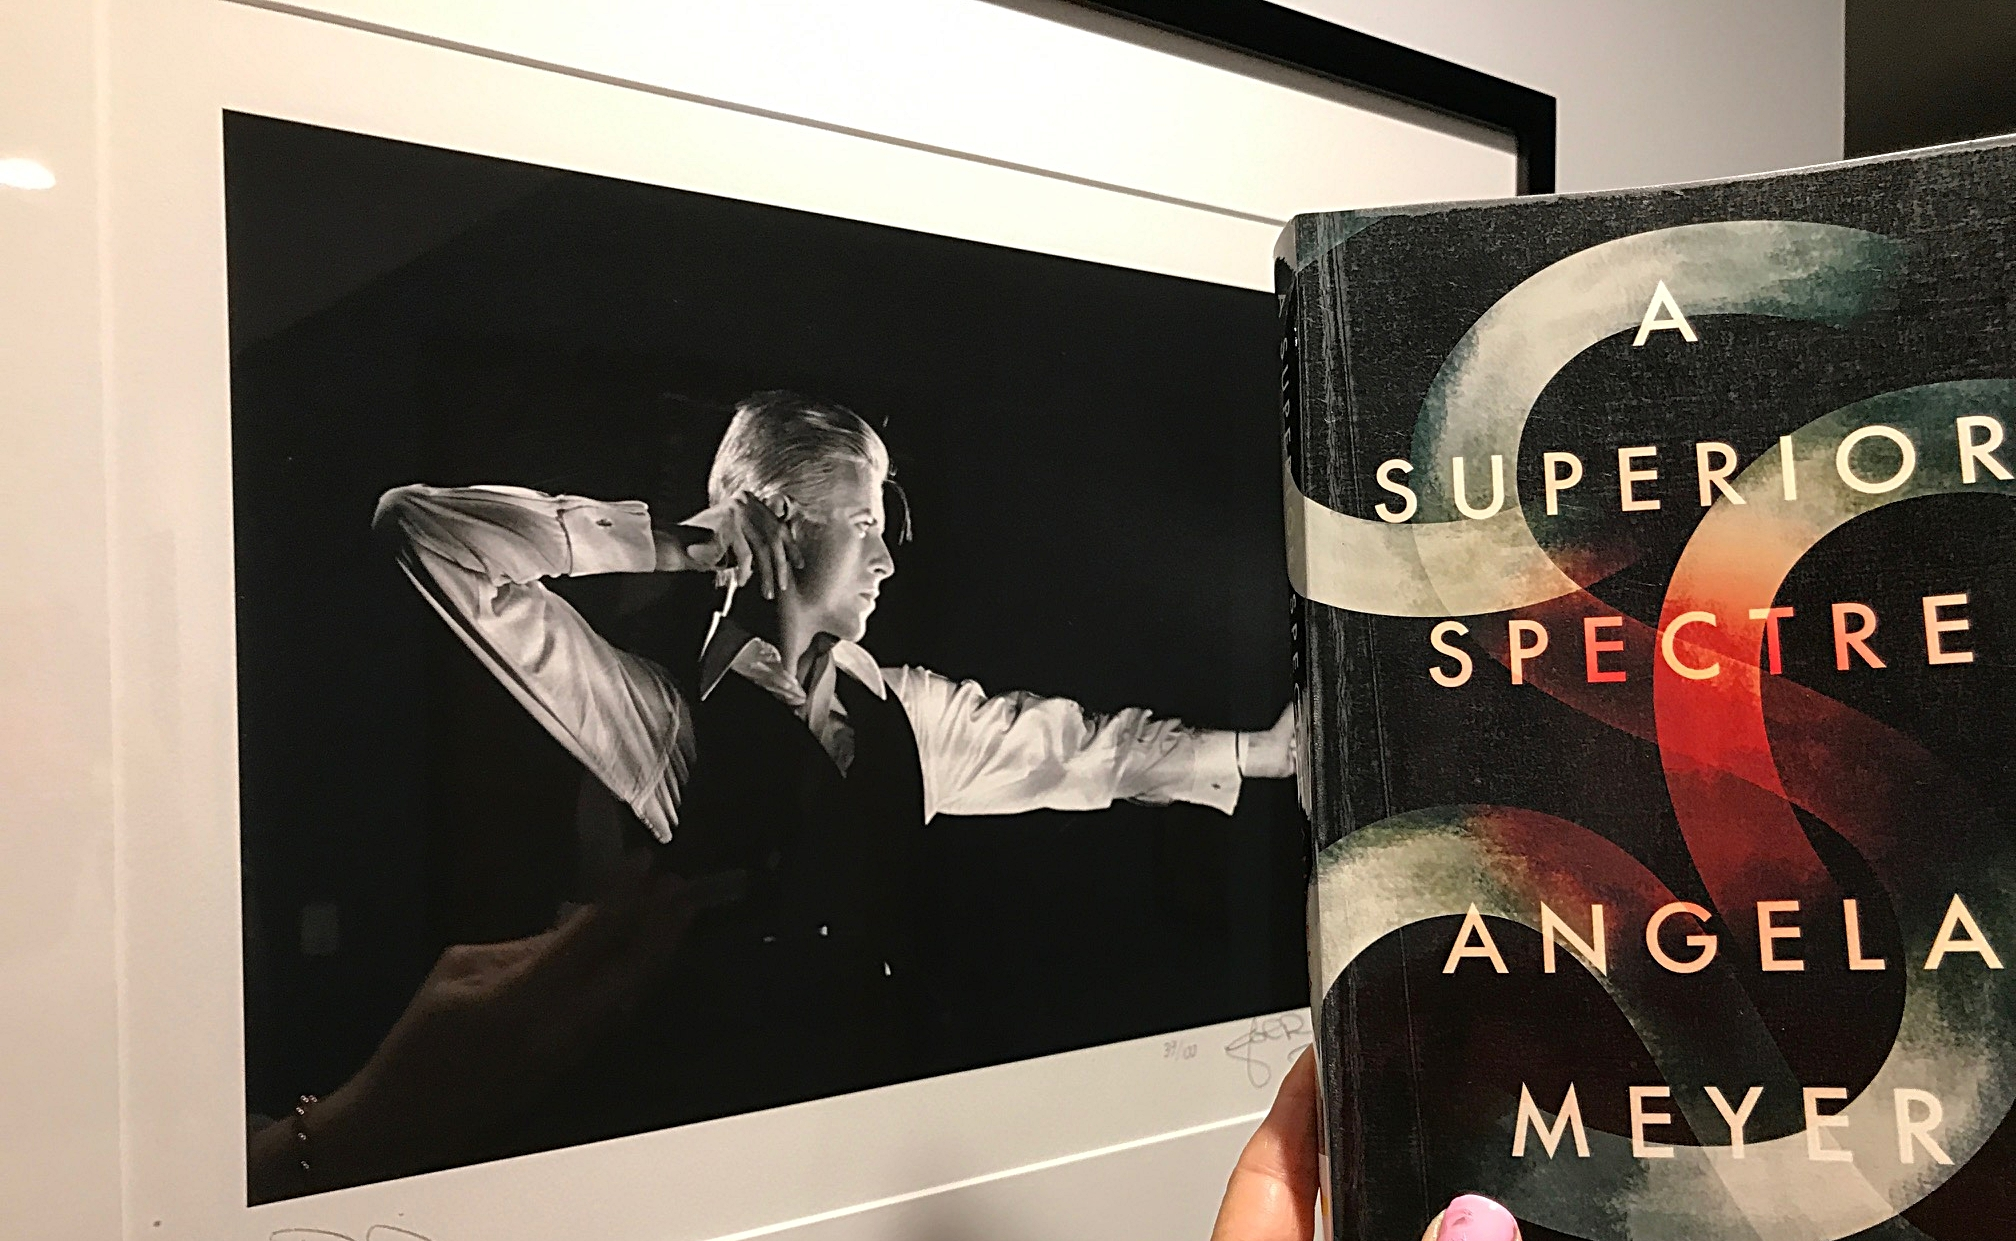 'A Superior Spectre' by Angela Meyer, snapped against my David Bowie 'The Archer' photo. The author and I are both Super Fans.